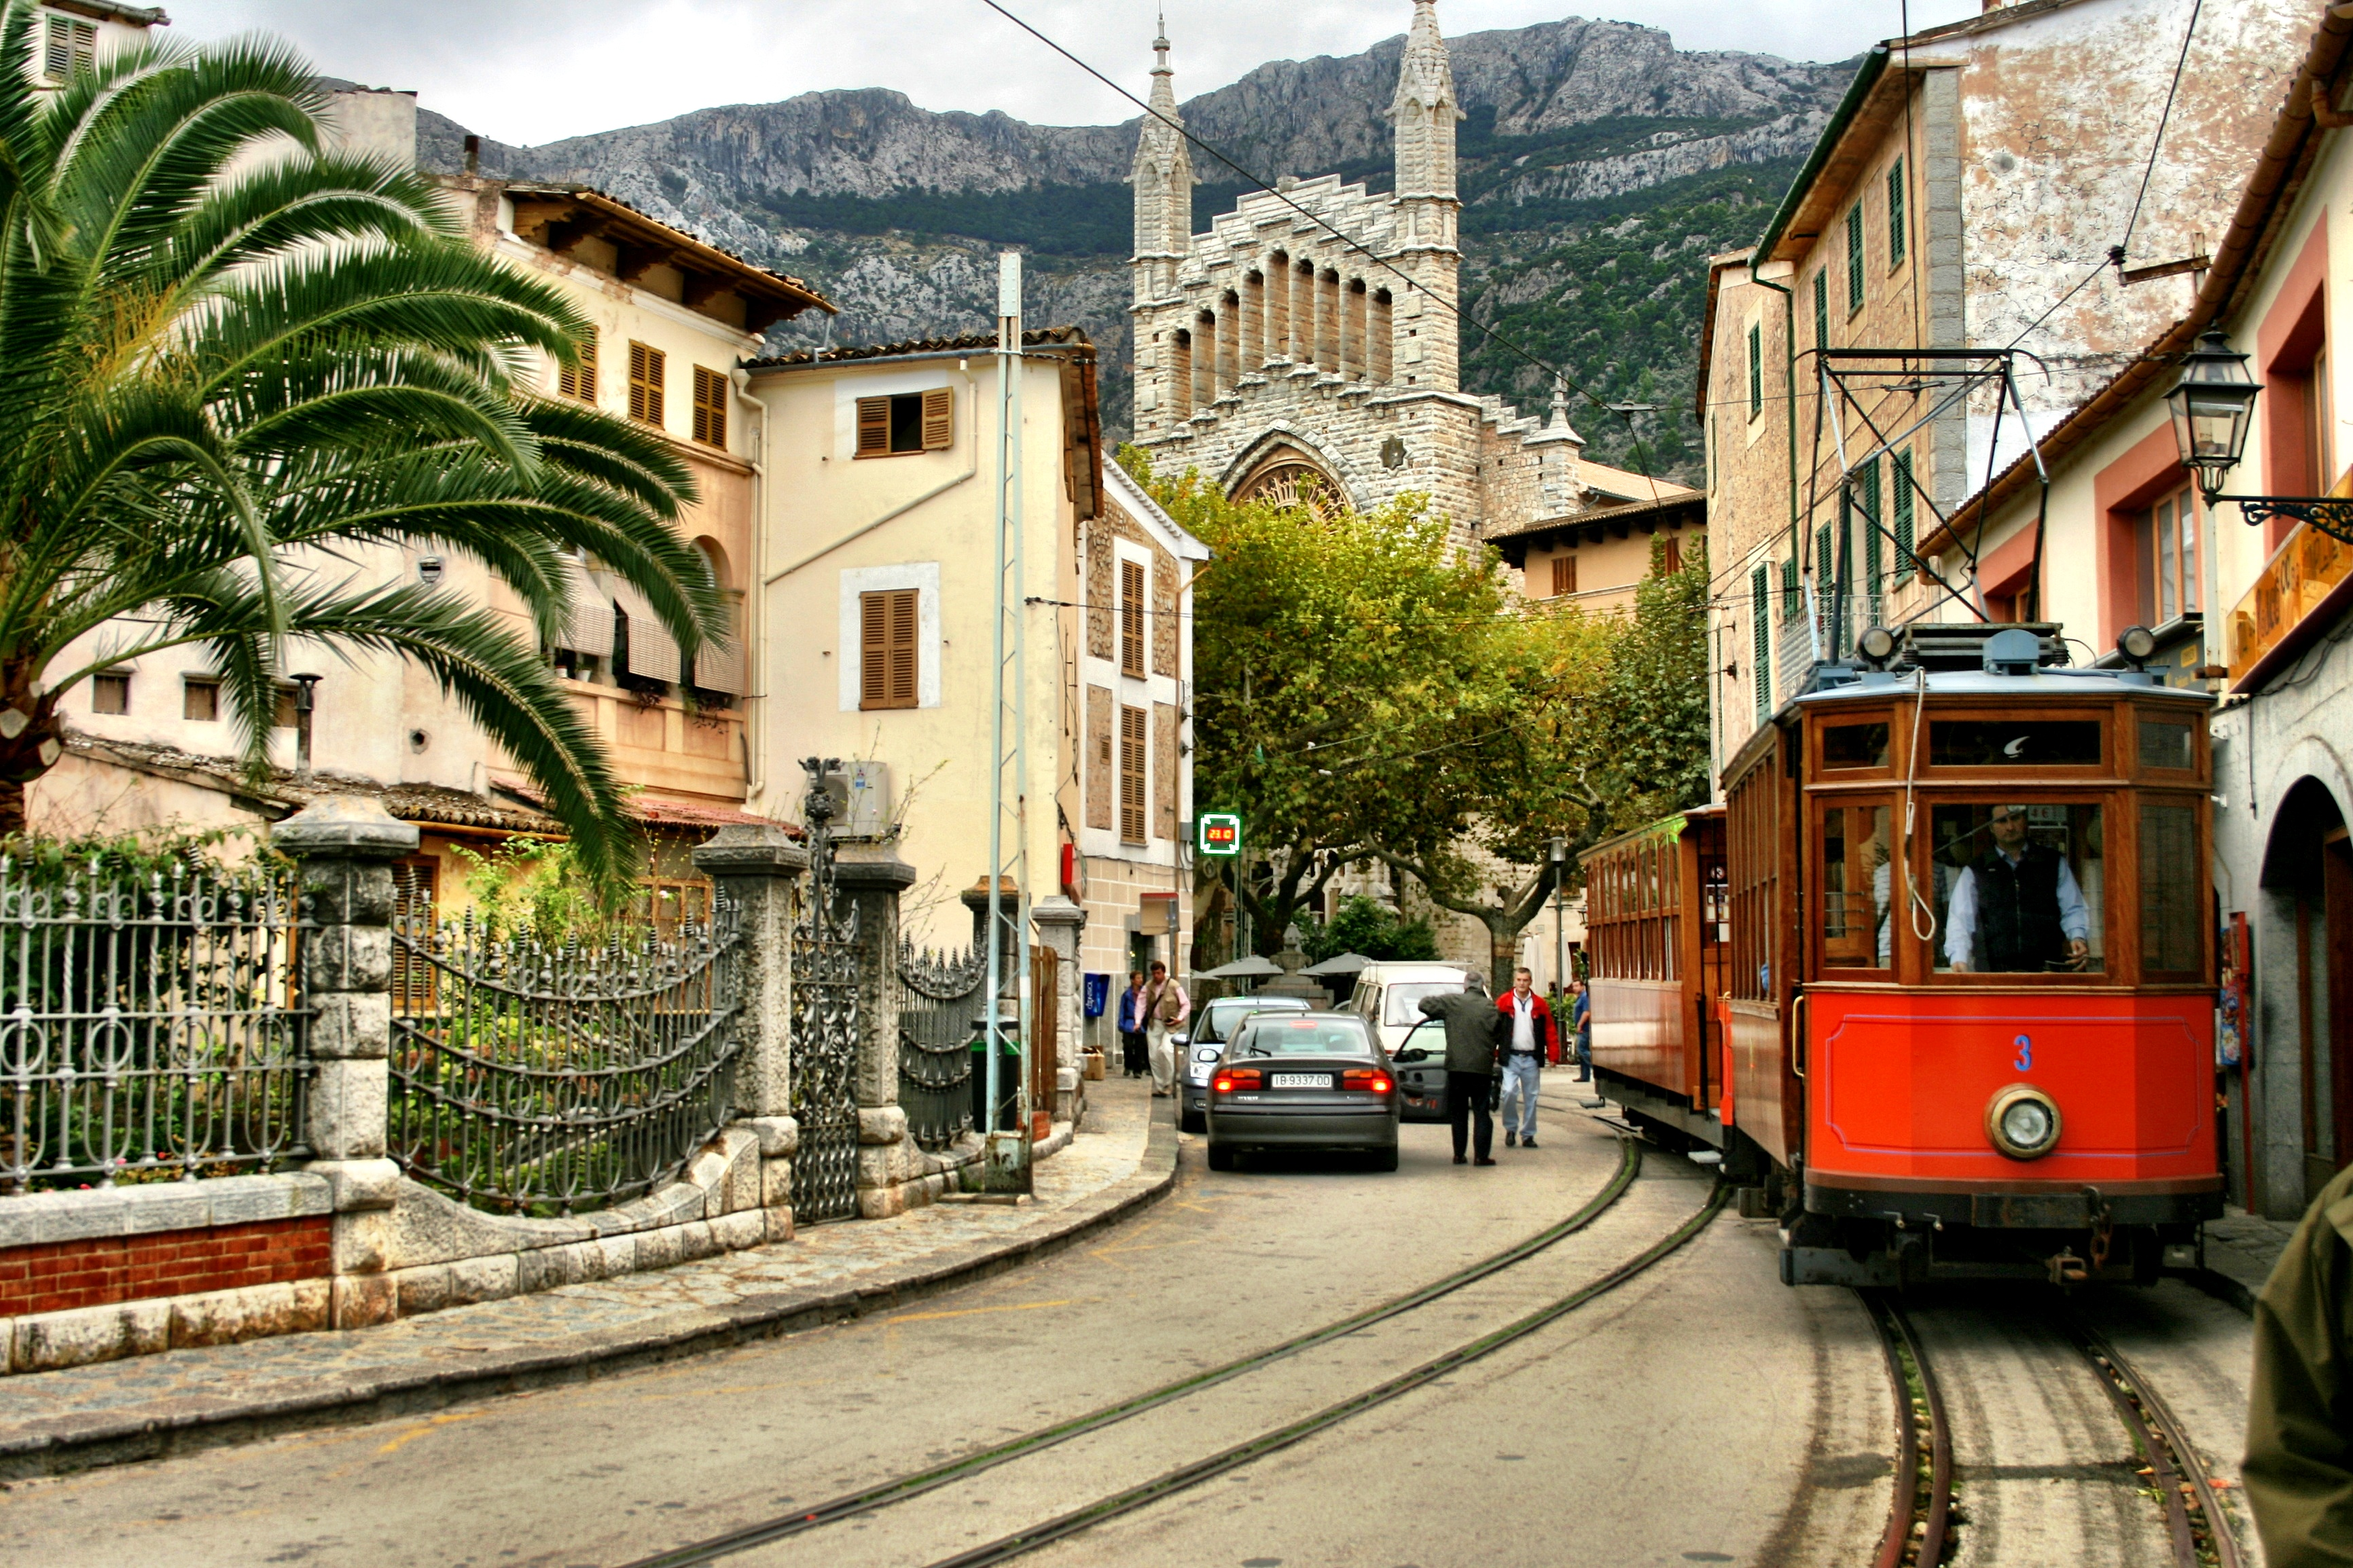 Sóller, Majorca: My kind of town - Telegraph